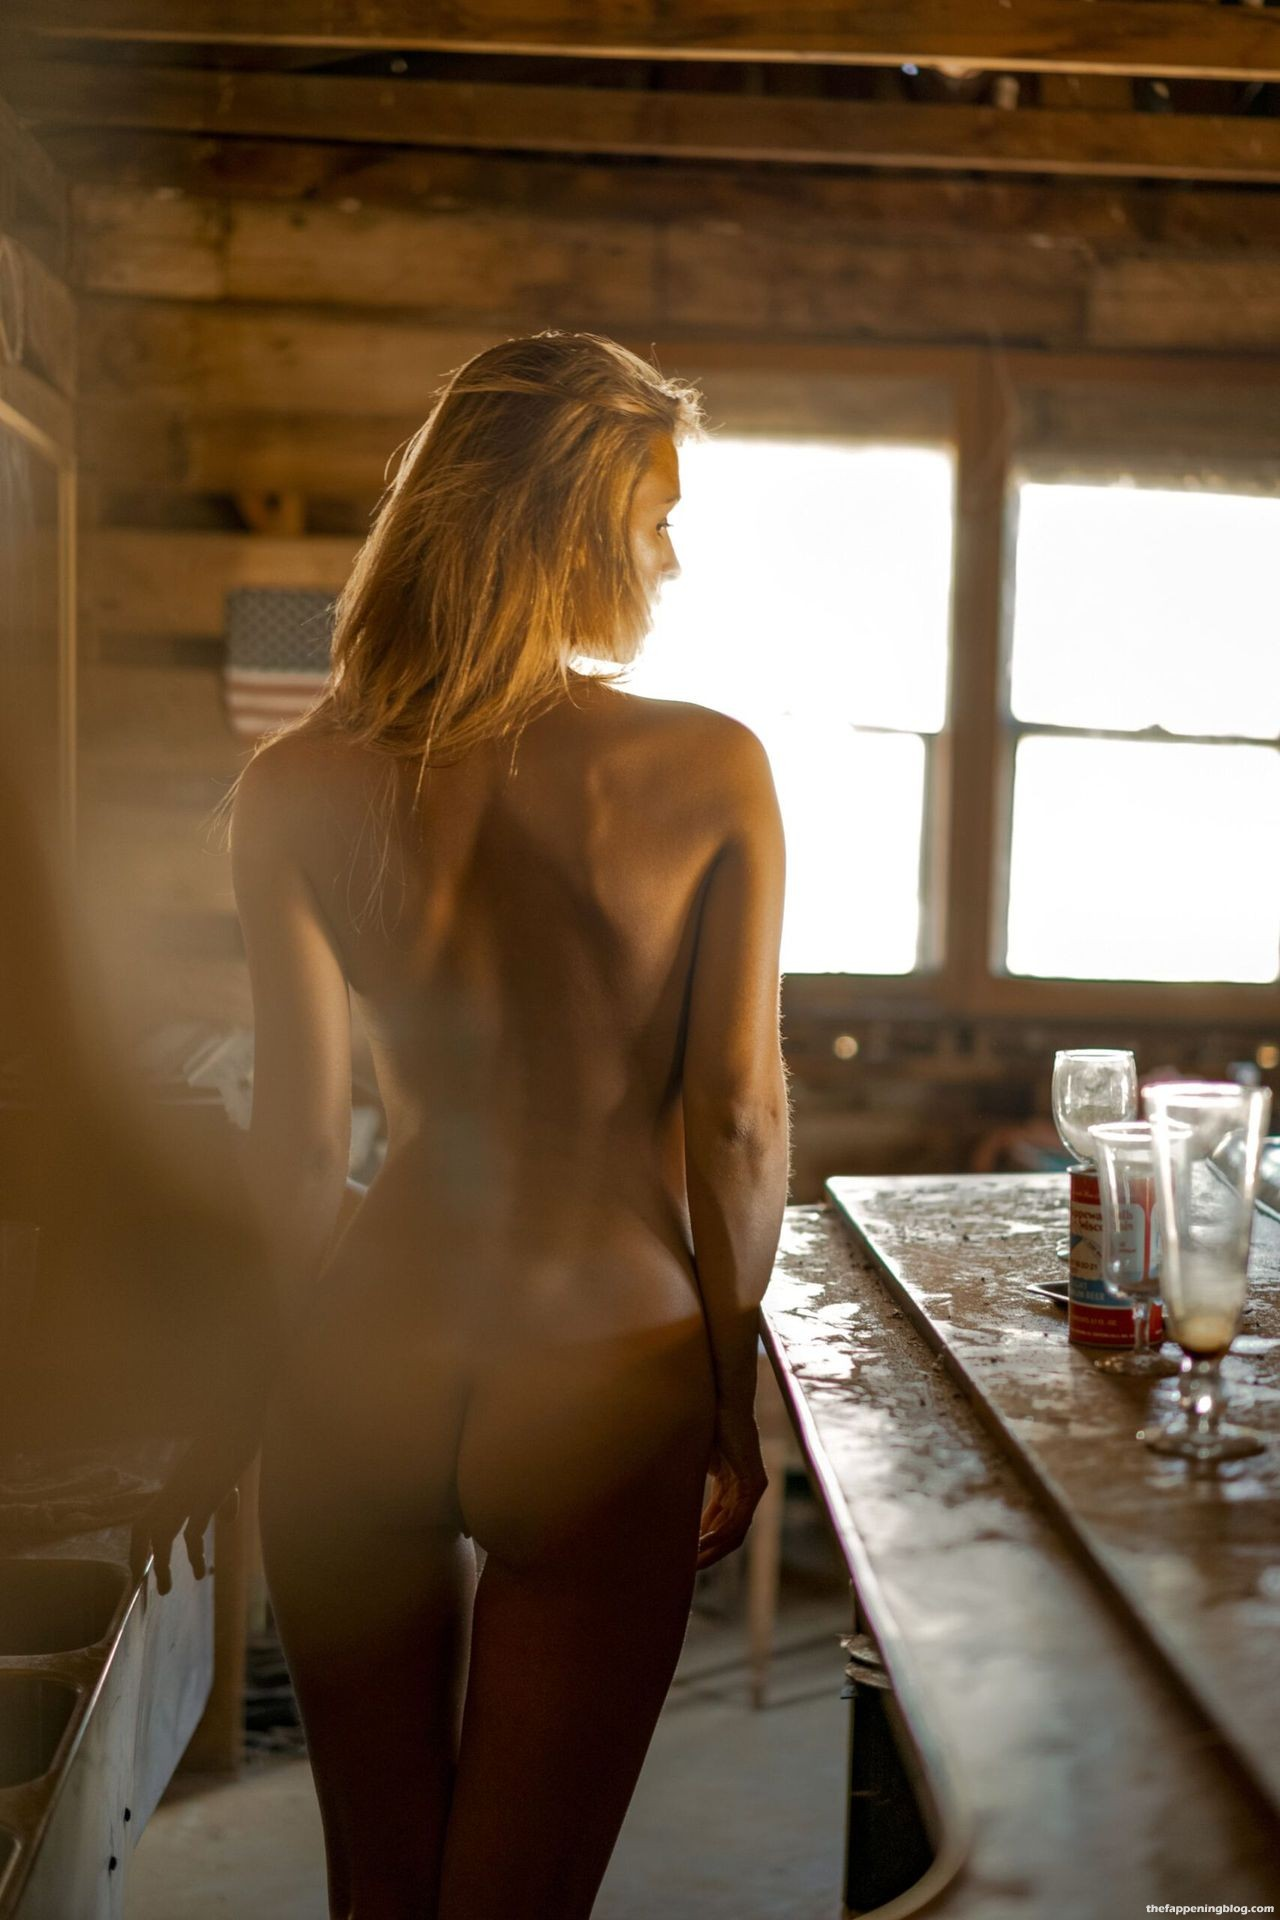 Marisa-Papen-Stunning-Naked-Body-18-scaled1-thefappeningblog.com_.jpg